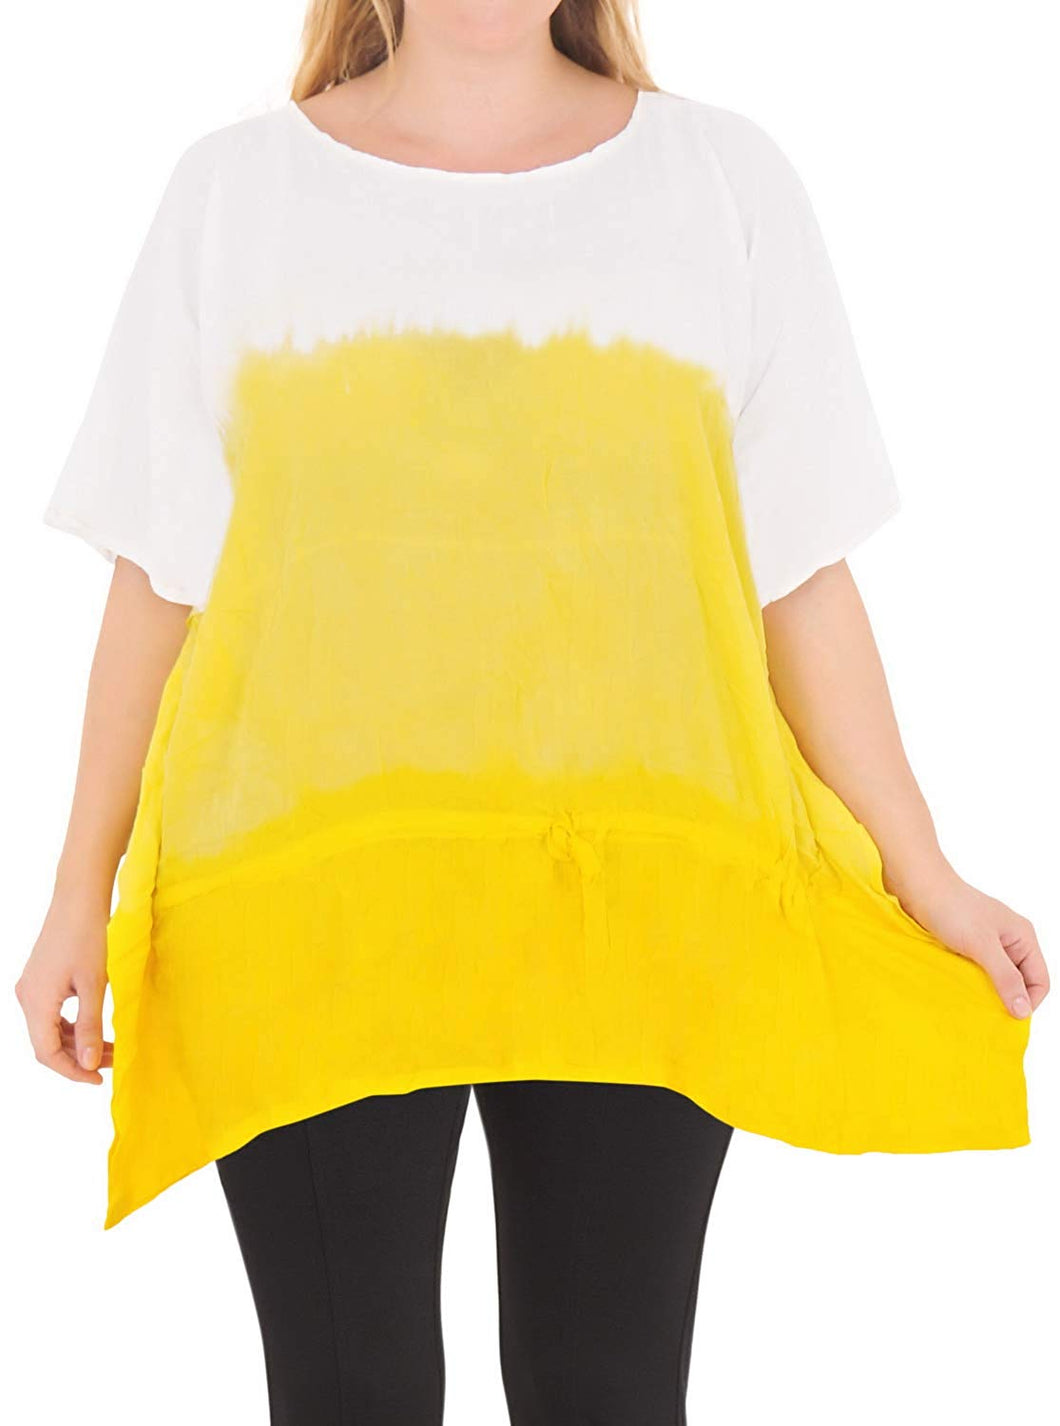 Casual Loose Fit Plus Size Kimono Loose Beachwear Women's Top Yellow 14 - 18